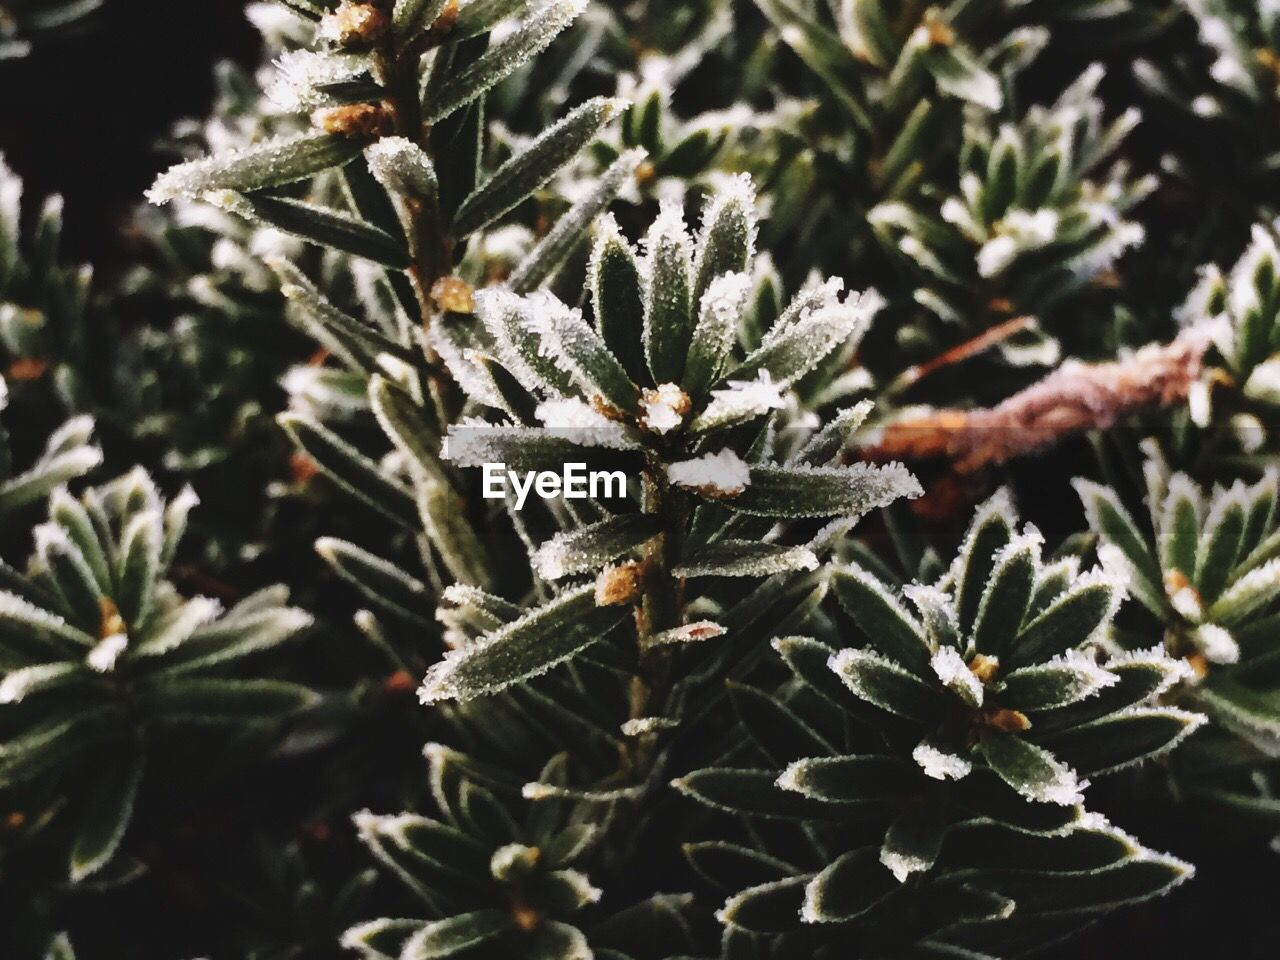 cold temperature, nature, winter, no people, snow, leaf, close-up, plant, frozen, beauty in nature, focus on foreground, growth, day, outdoors, needle, spruce tree, freshness